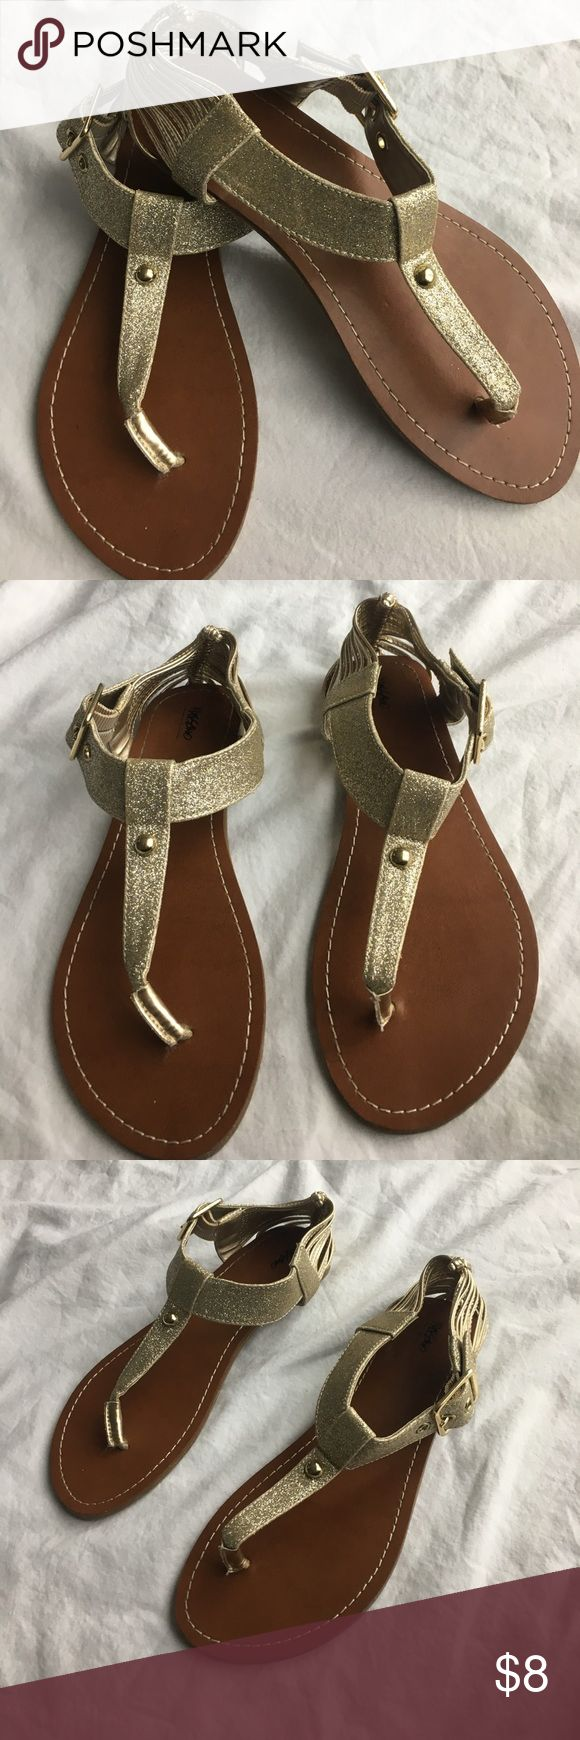 Mossimo Gold Sandals Size 6.5 Mossimo gold sandals. Very cute! Perfect for the summer. Great condition. Barely worn. Mossimo Supply Co Shoes Sandals